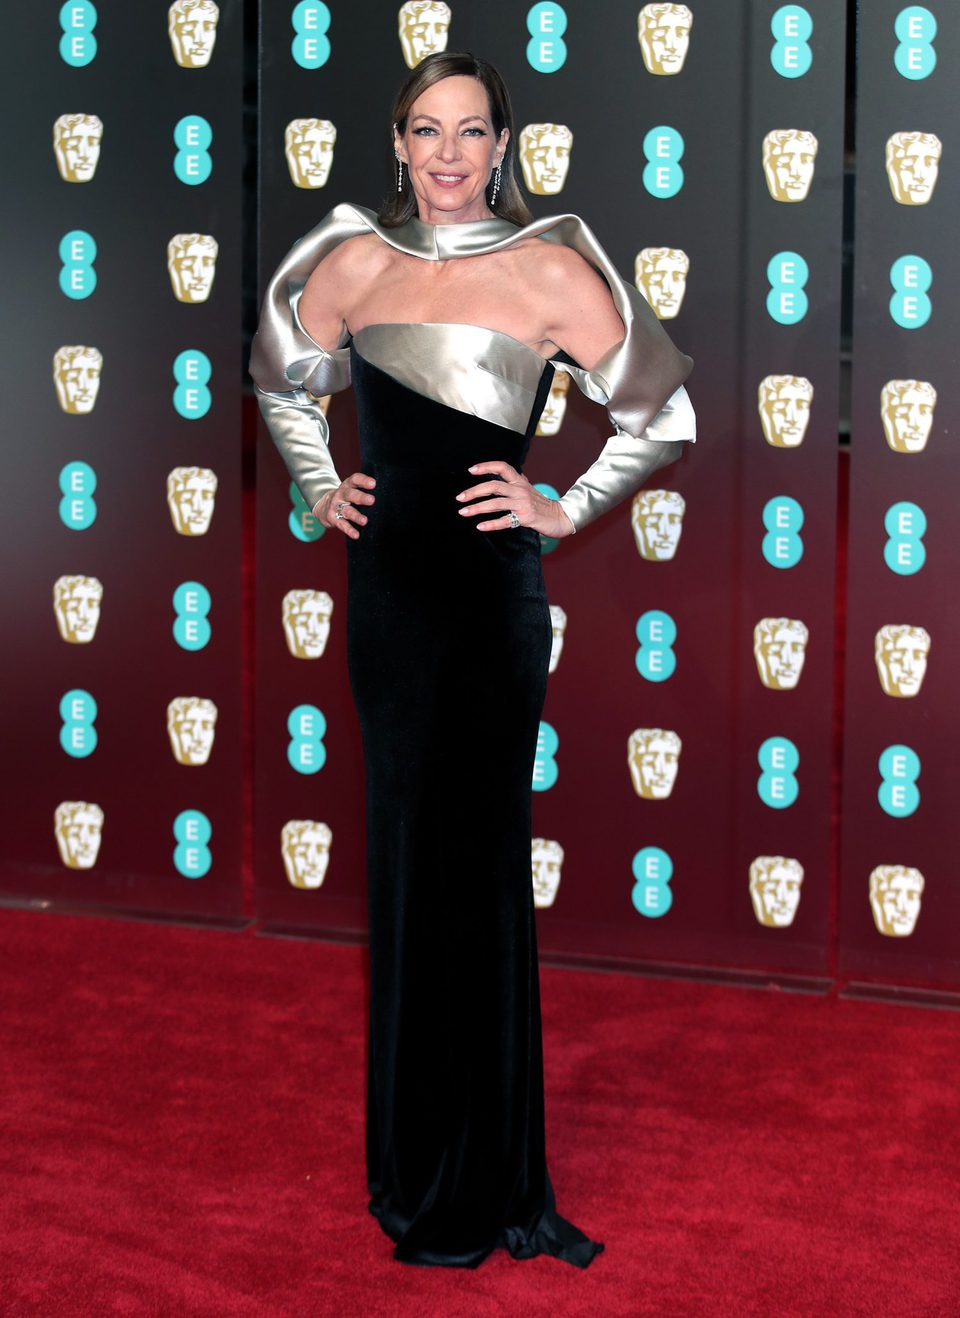 Allison Janney at the BAFTAs 2018 red carpet